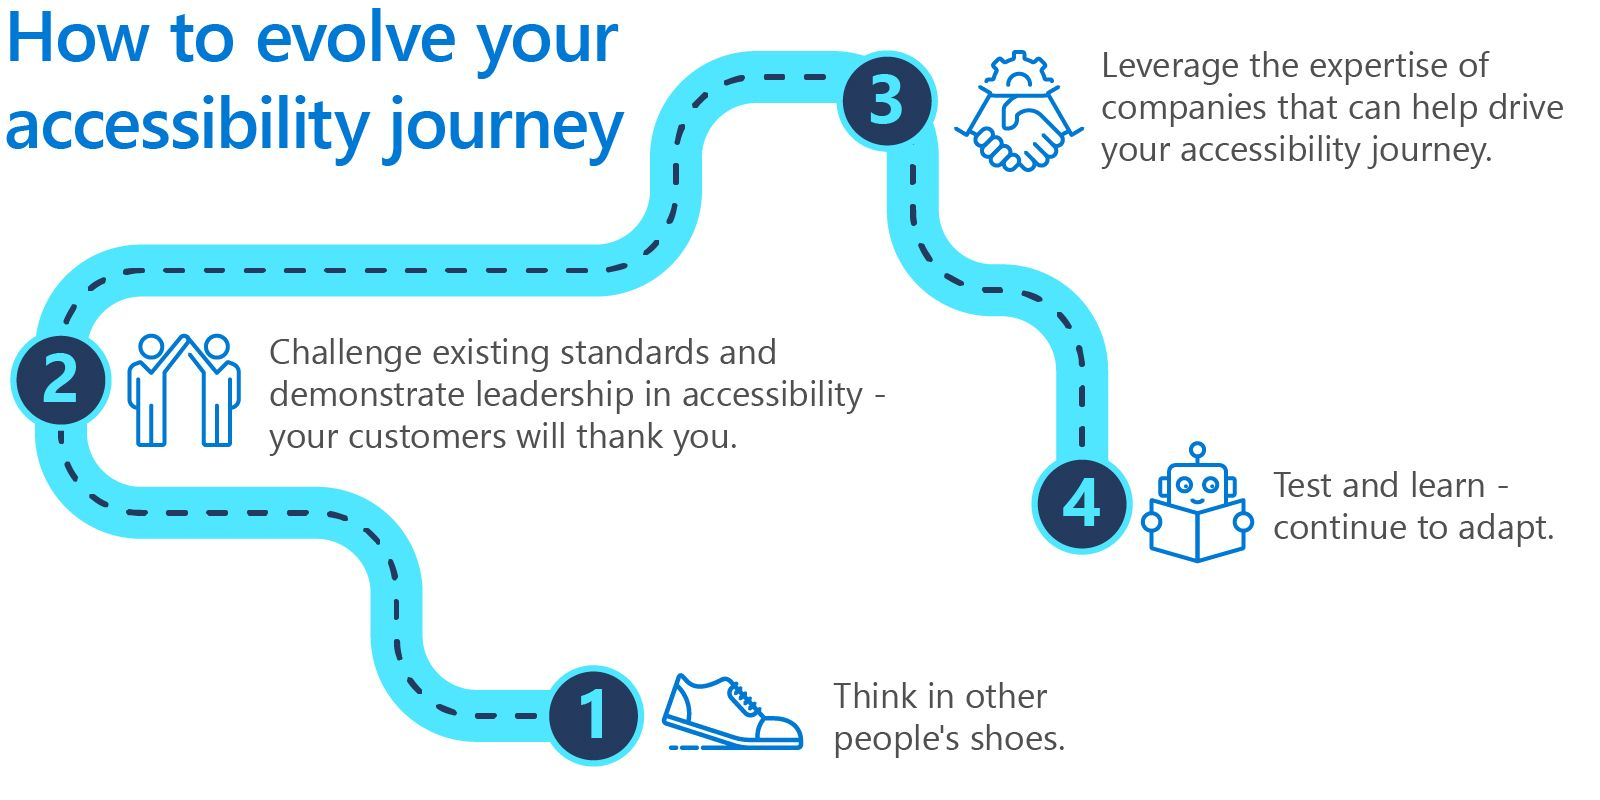 How to evolve your accessibility journey 1. Think in other people's shoes. 2. Challenge existing standards and demonstrate leadership in accessibility - your customers will thank you. 3. Leverage the expertise of companies that can help drive your accessibility journey. 4. Test and learn - continue to adapt.